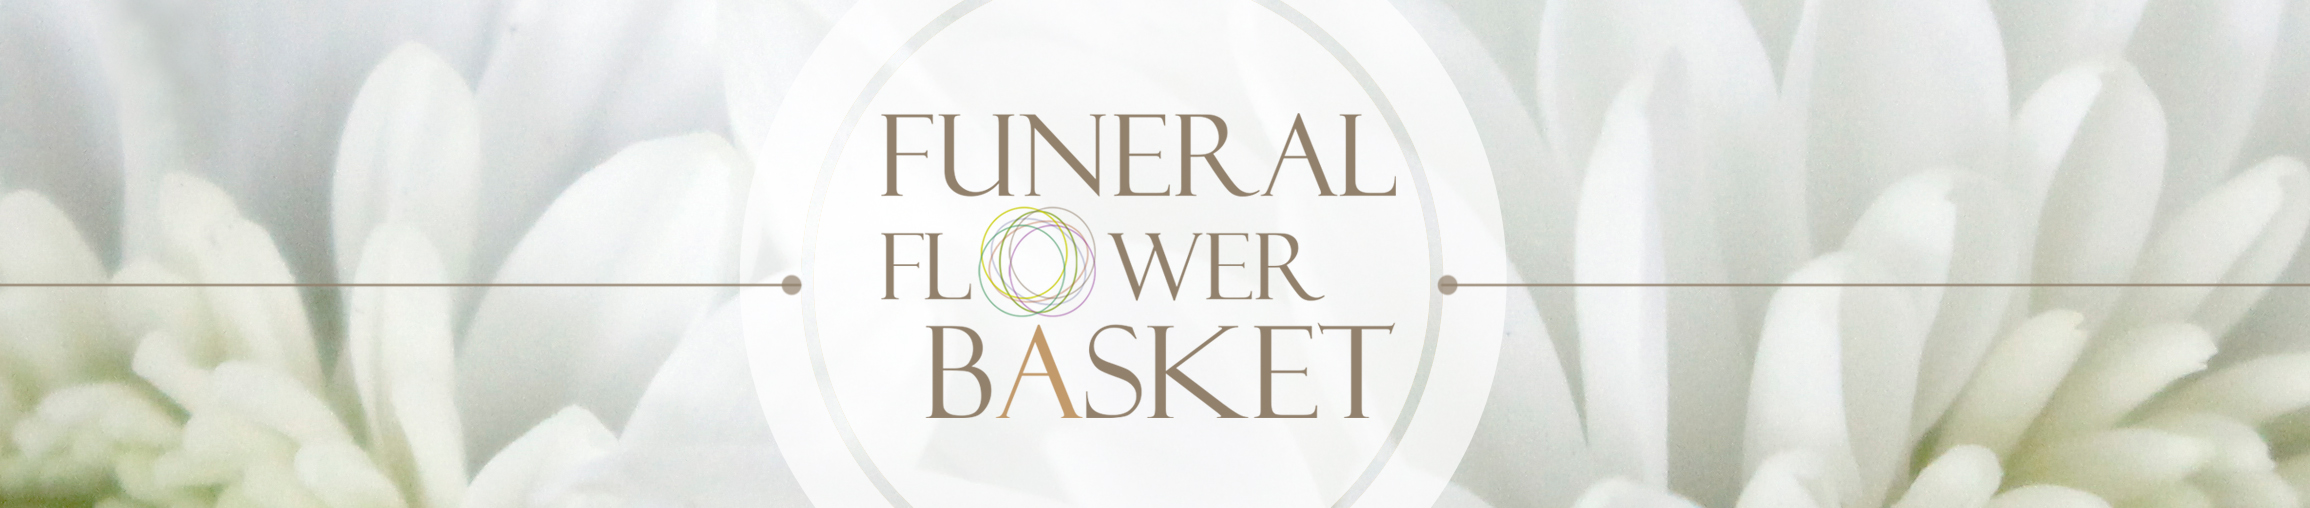 funeral-flower-basket-cn